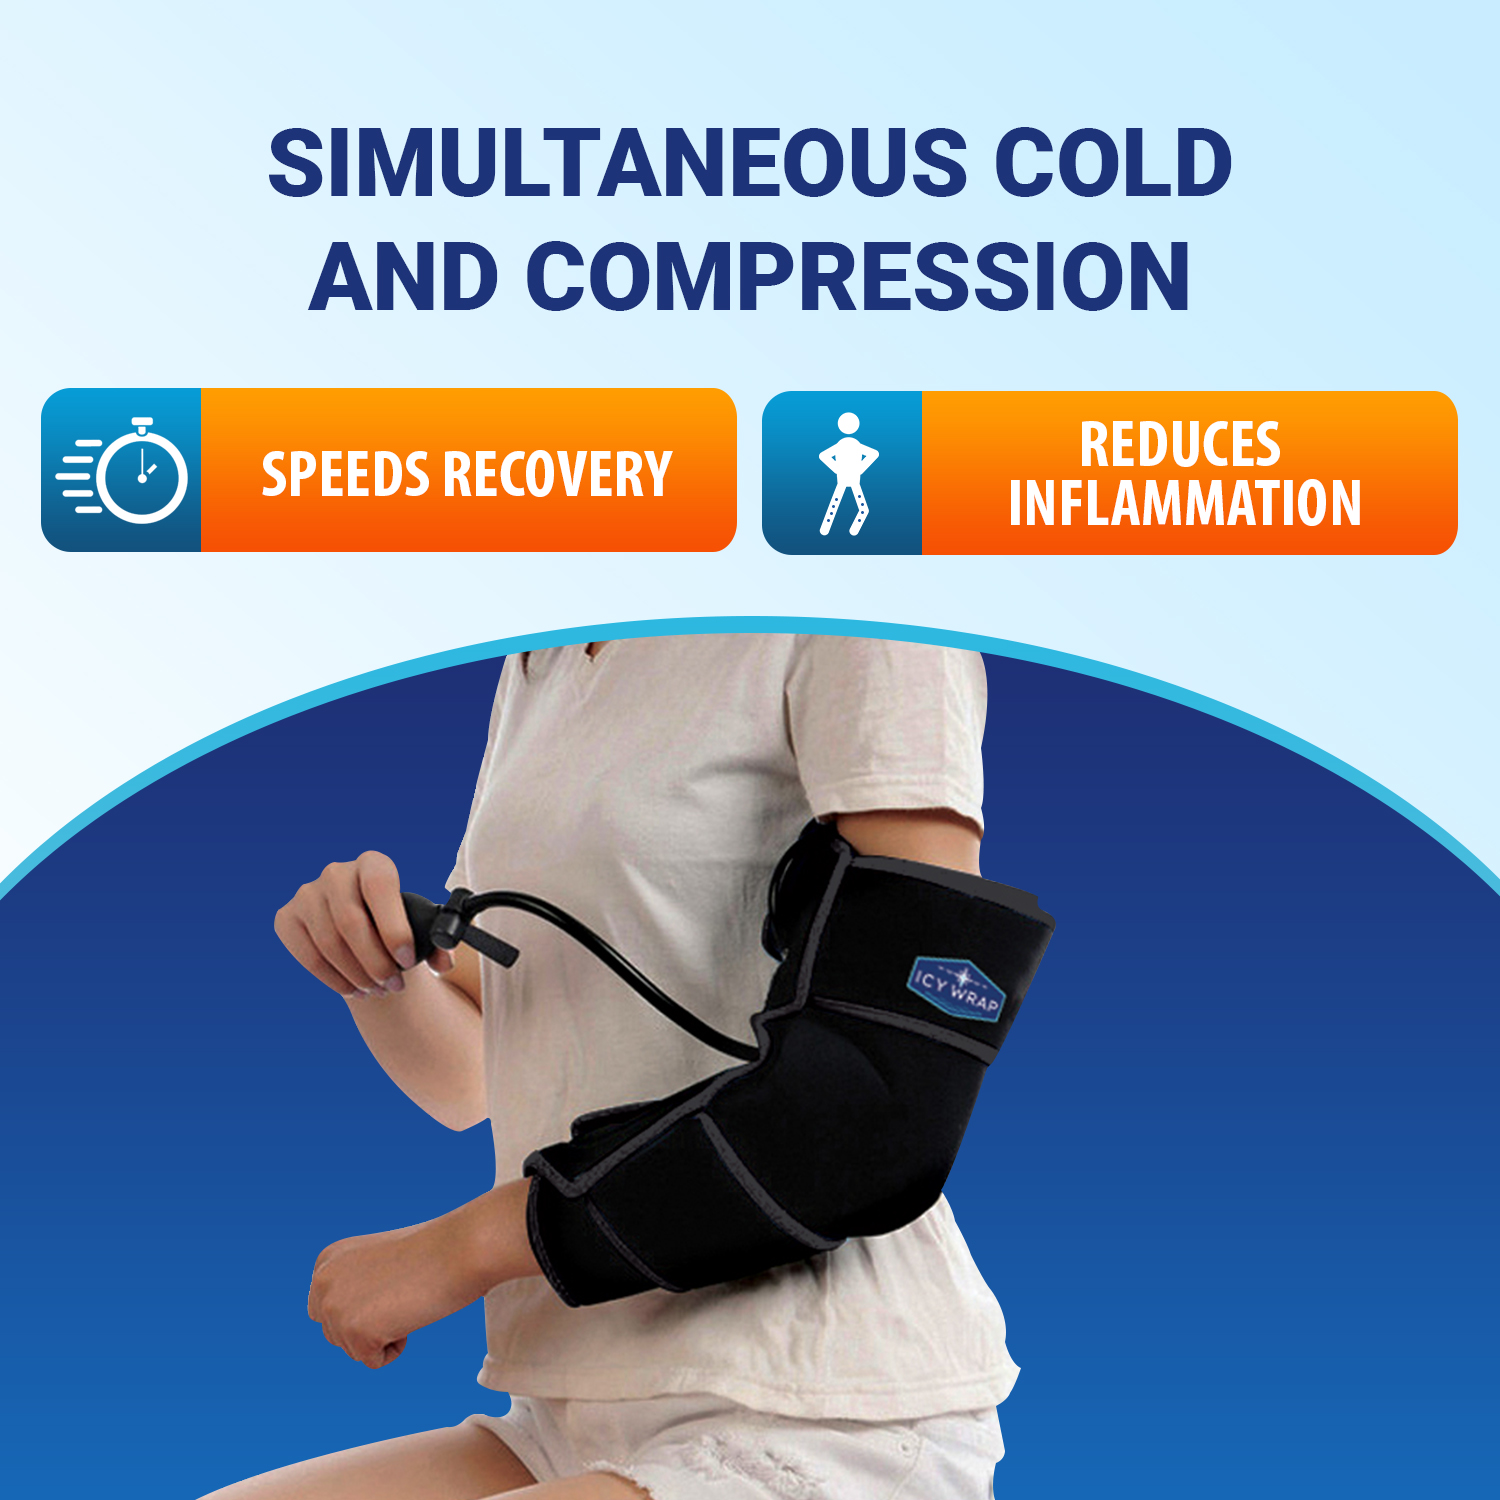 Cold Pack Compression Wrap for Elbow by Icy Wrap - Ice Pack Therapy Cryo-Cool Flexible Treatment for Injuries, Aches, Swelling, Sprains, Inflammation